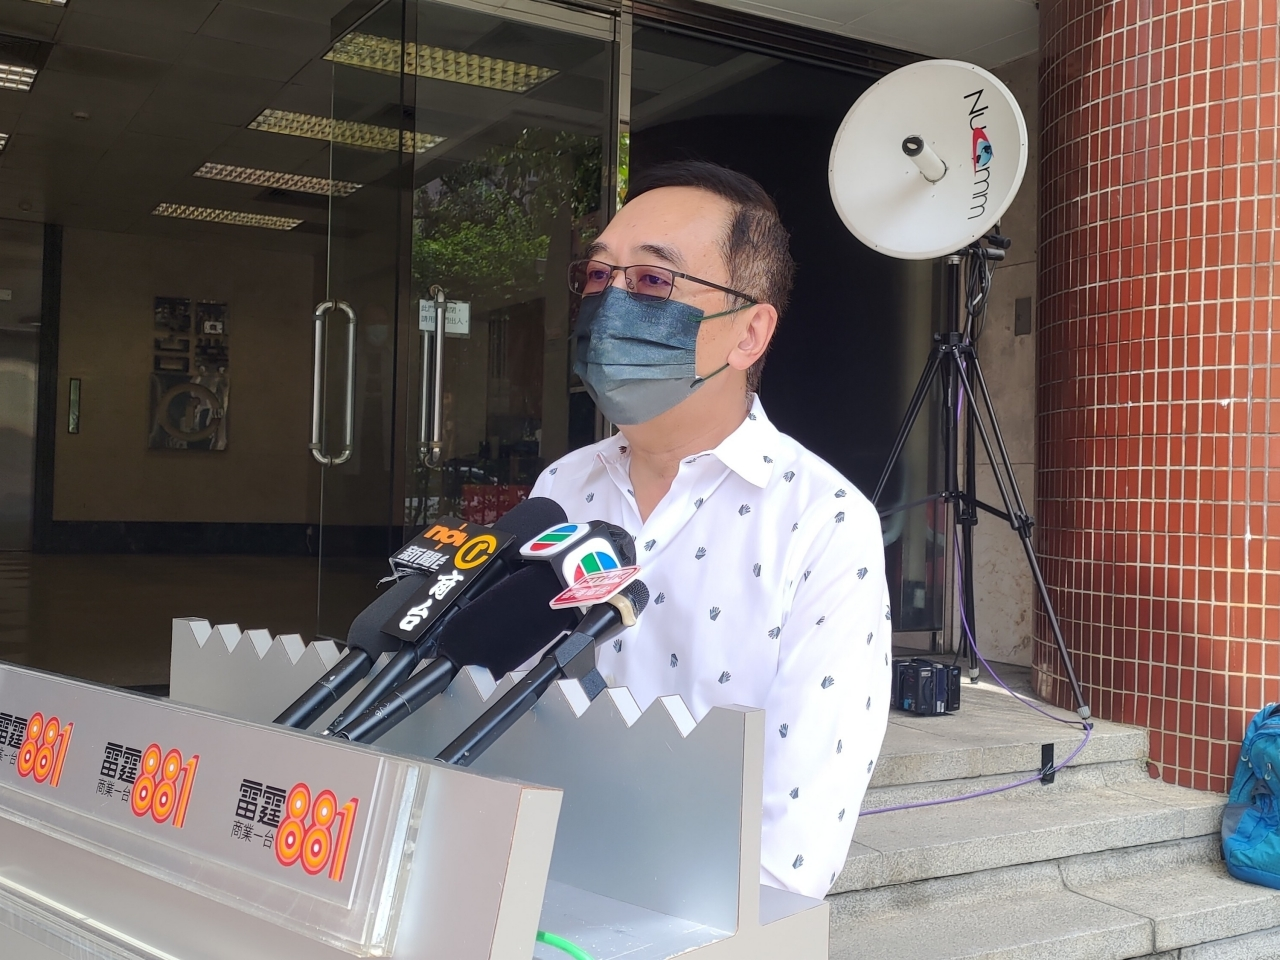 The head of the General Chamber of Hong Kong, George Leung, says a high vaccination rate is essential for the economy to recover. Photo: RTHK